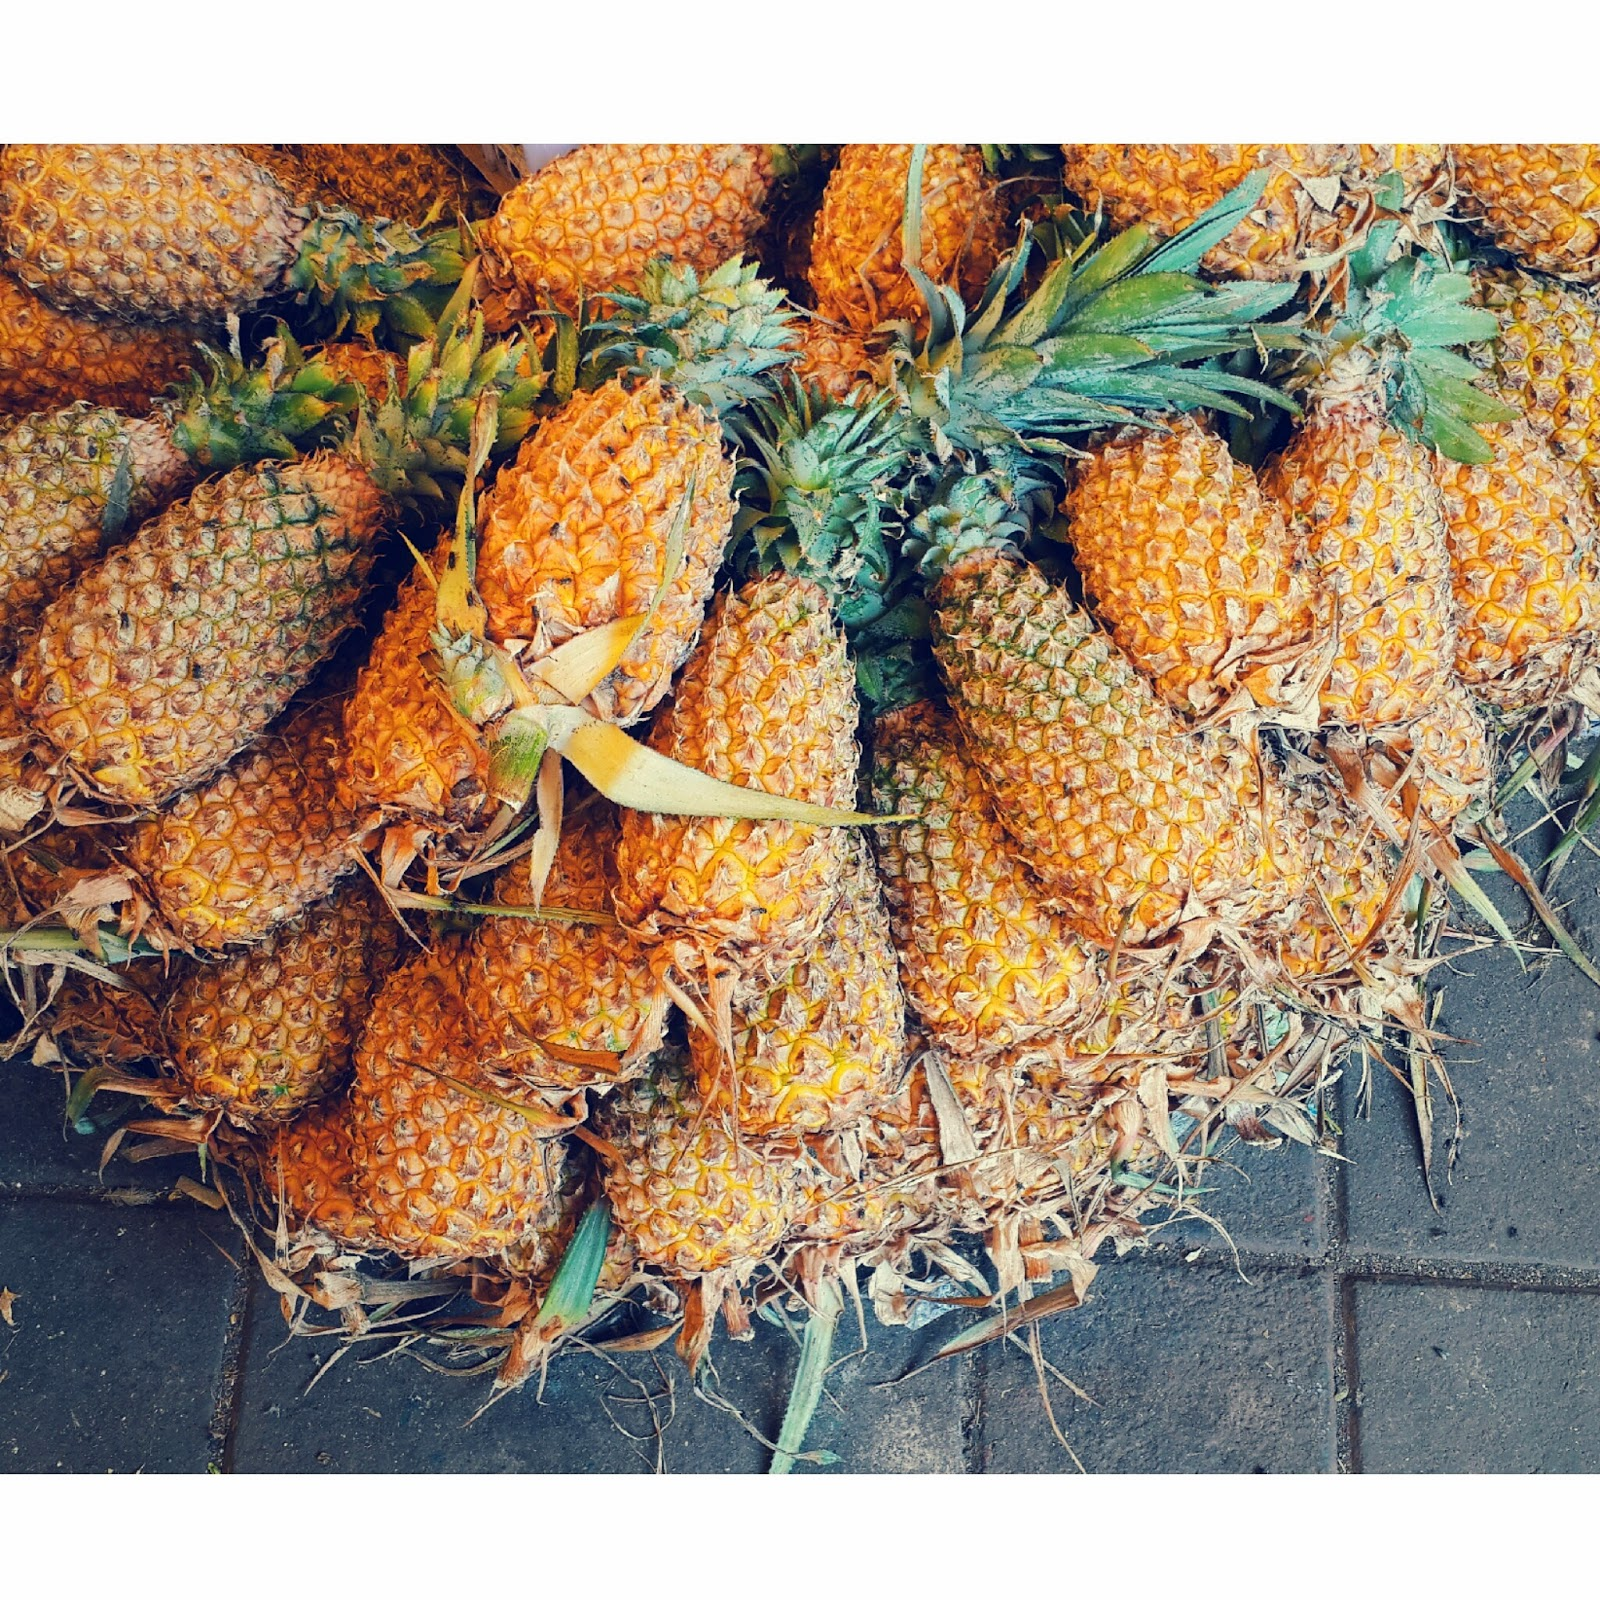 The perfect fruit for the summer, a mound of pineapples are organised to be sold at the market